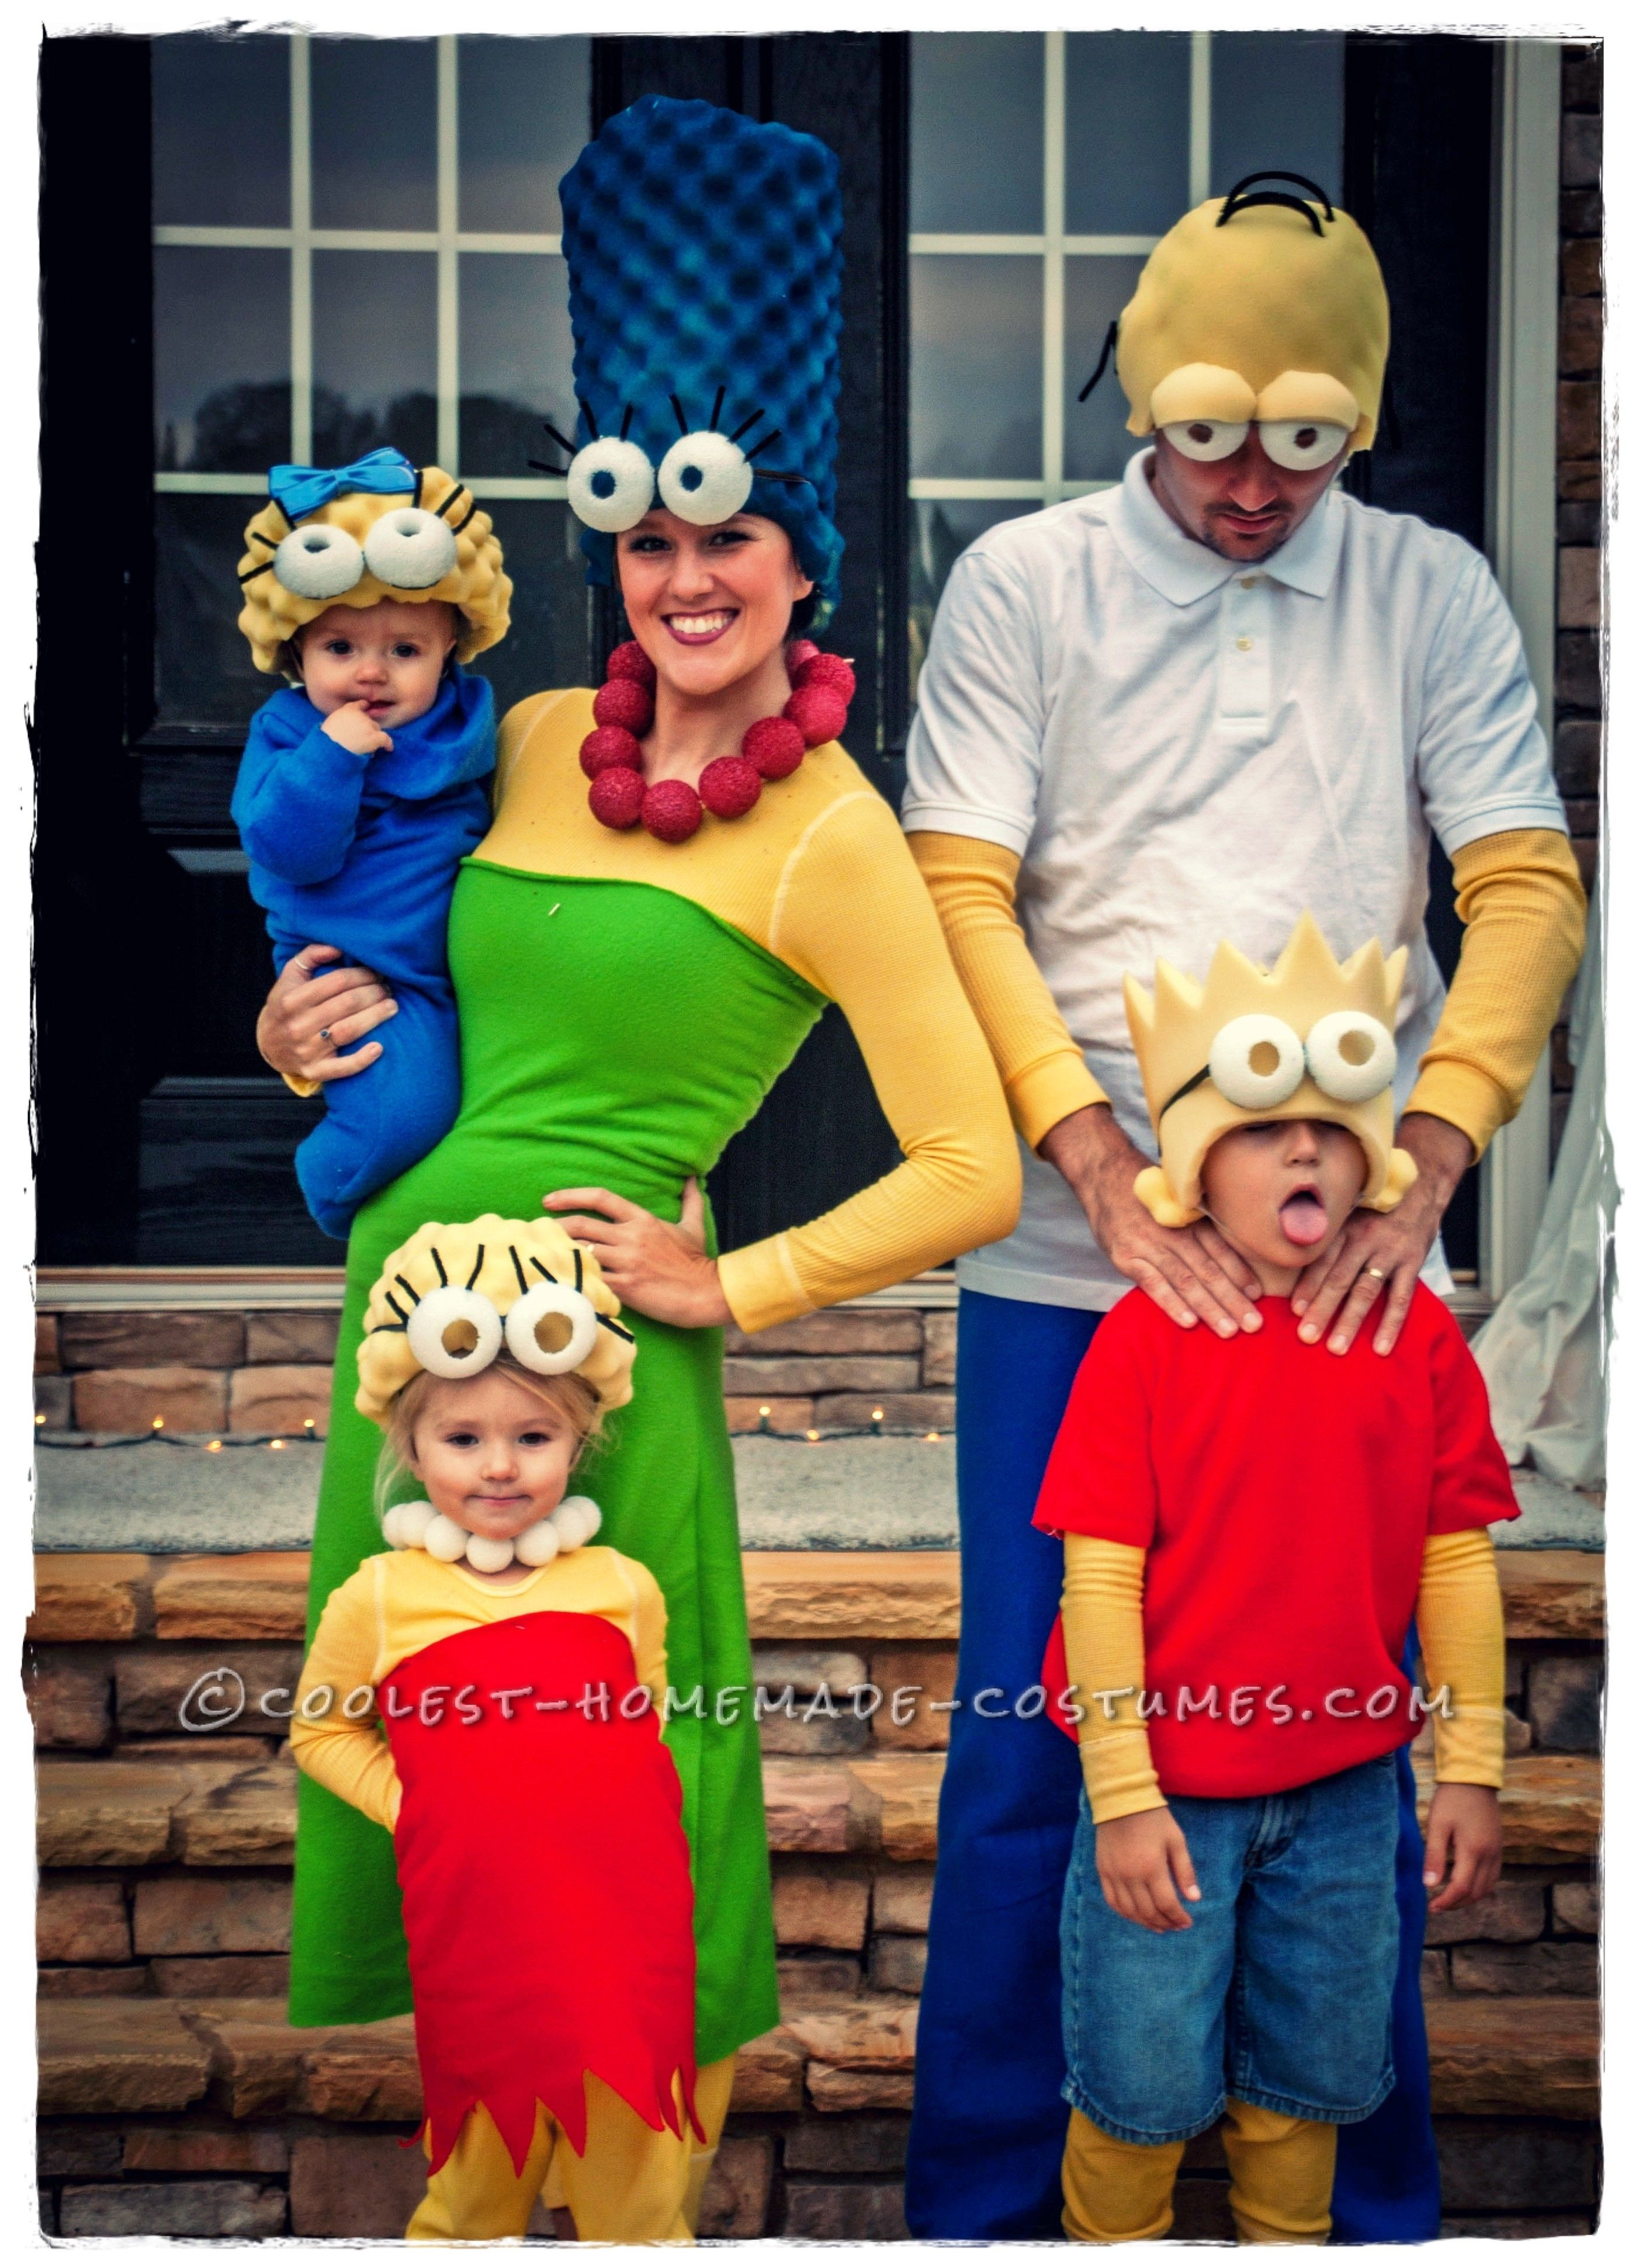 Family Of 4 Halloween Costumes 2019.Coolest Homemade Simpsons Family Costume Costume In 2019